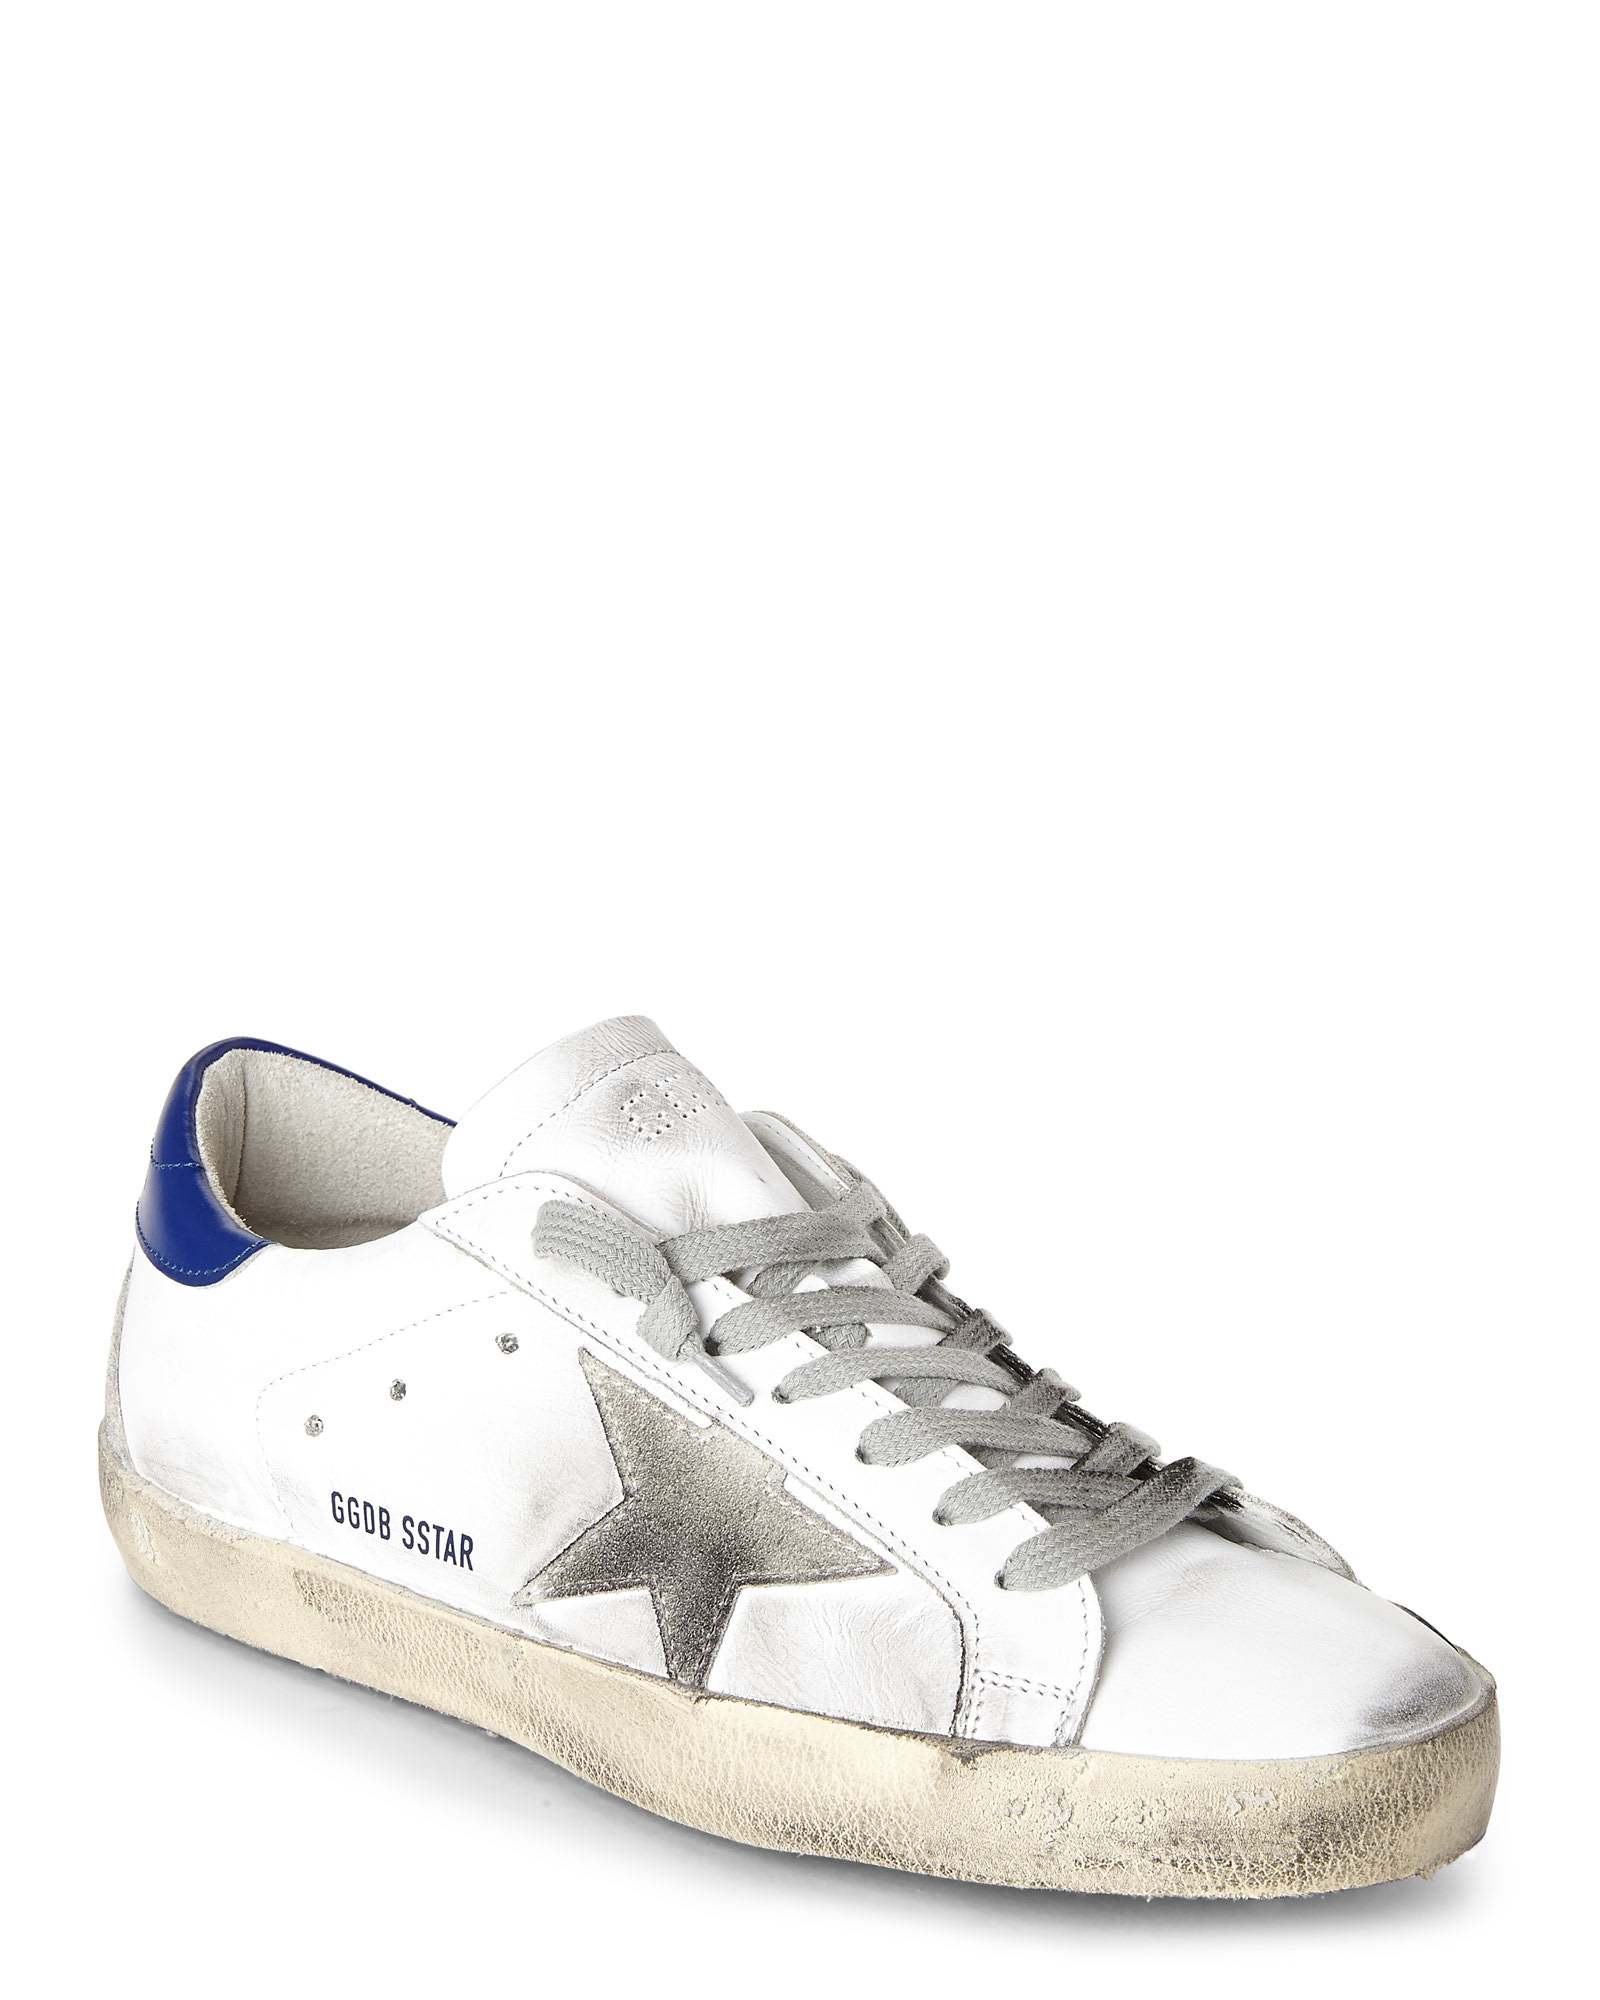 Golden Goose Off-White & Grey Superstar Sneakers